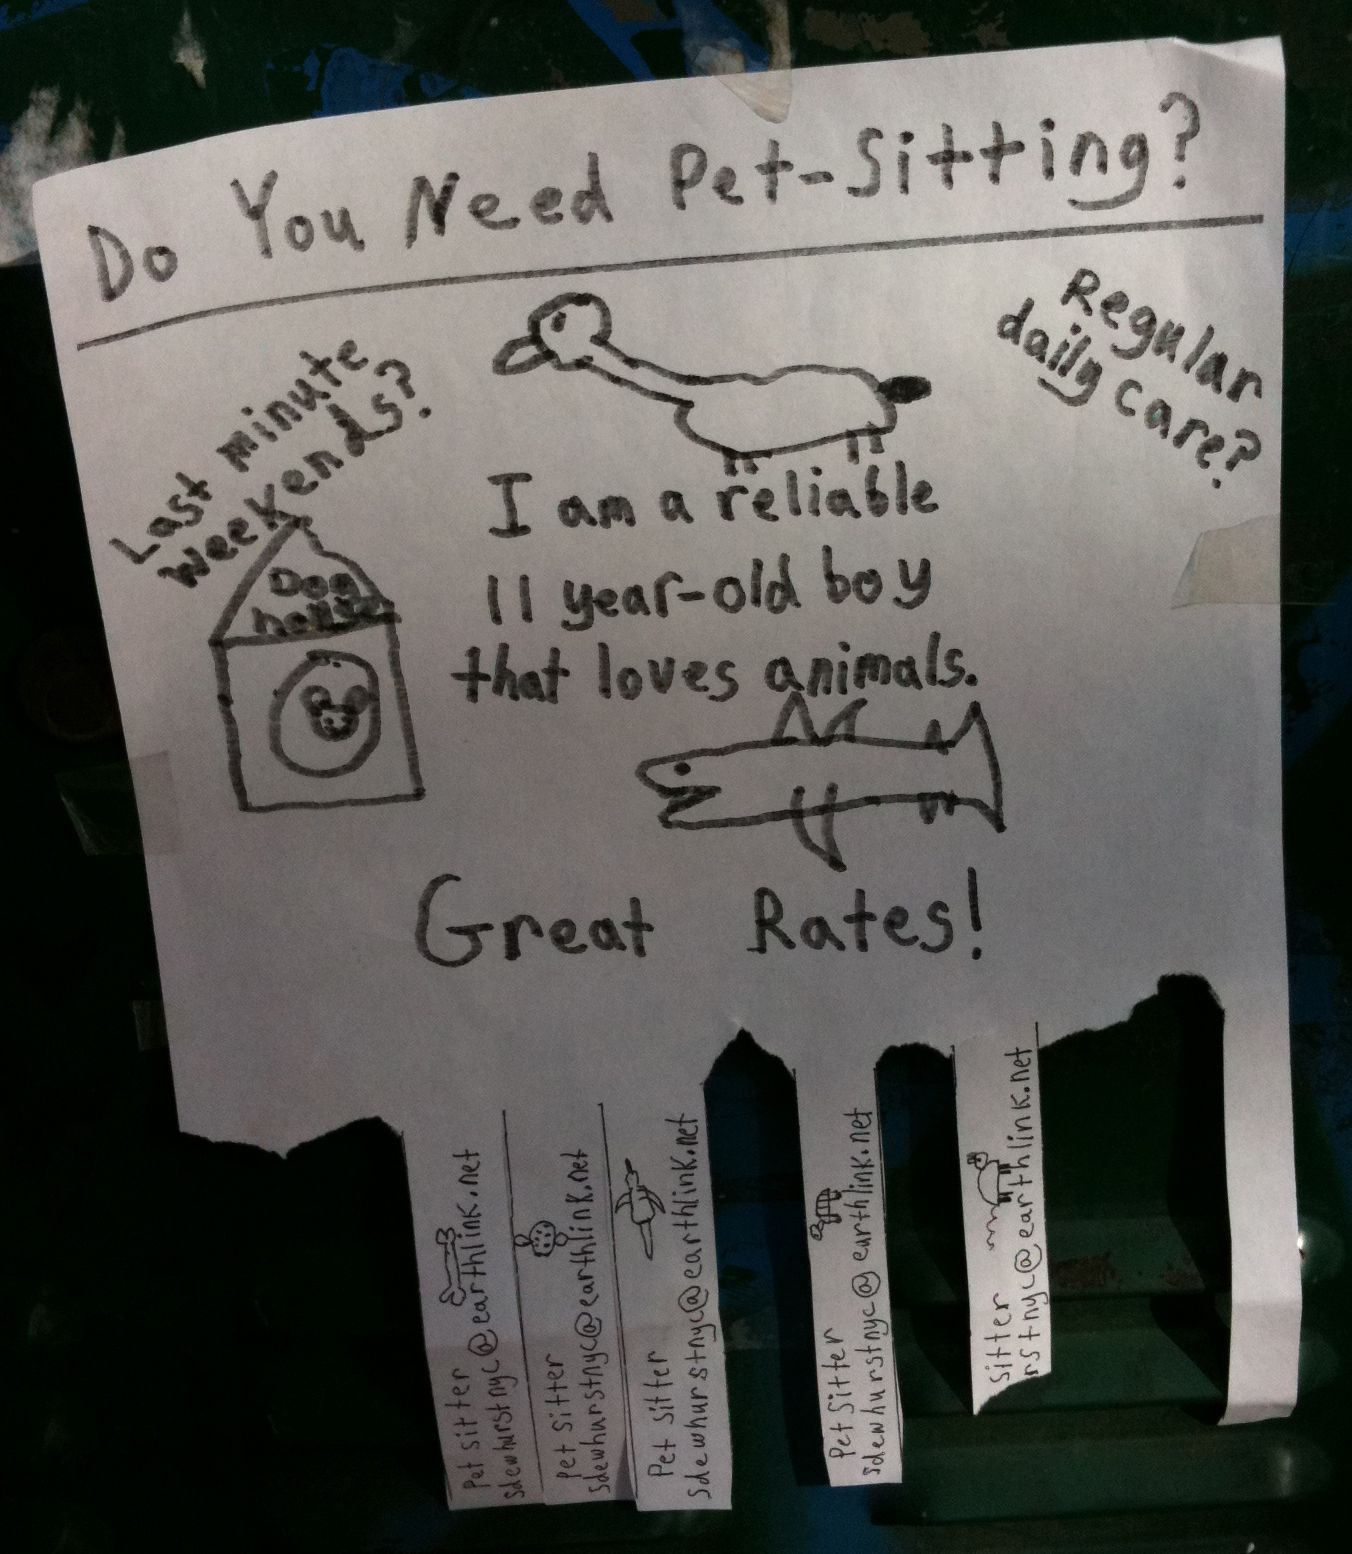 cool babysitting flyers babysitting flyers pet sitting flyer court st brooklyn 2010